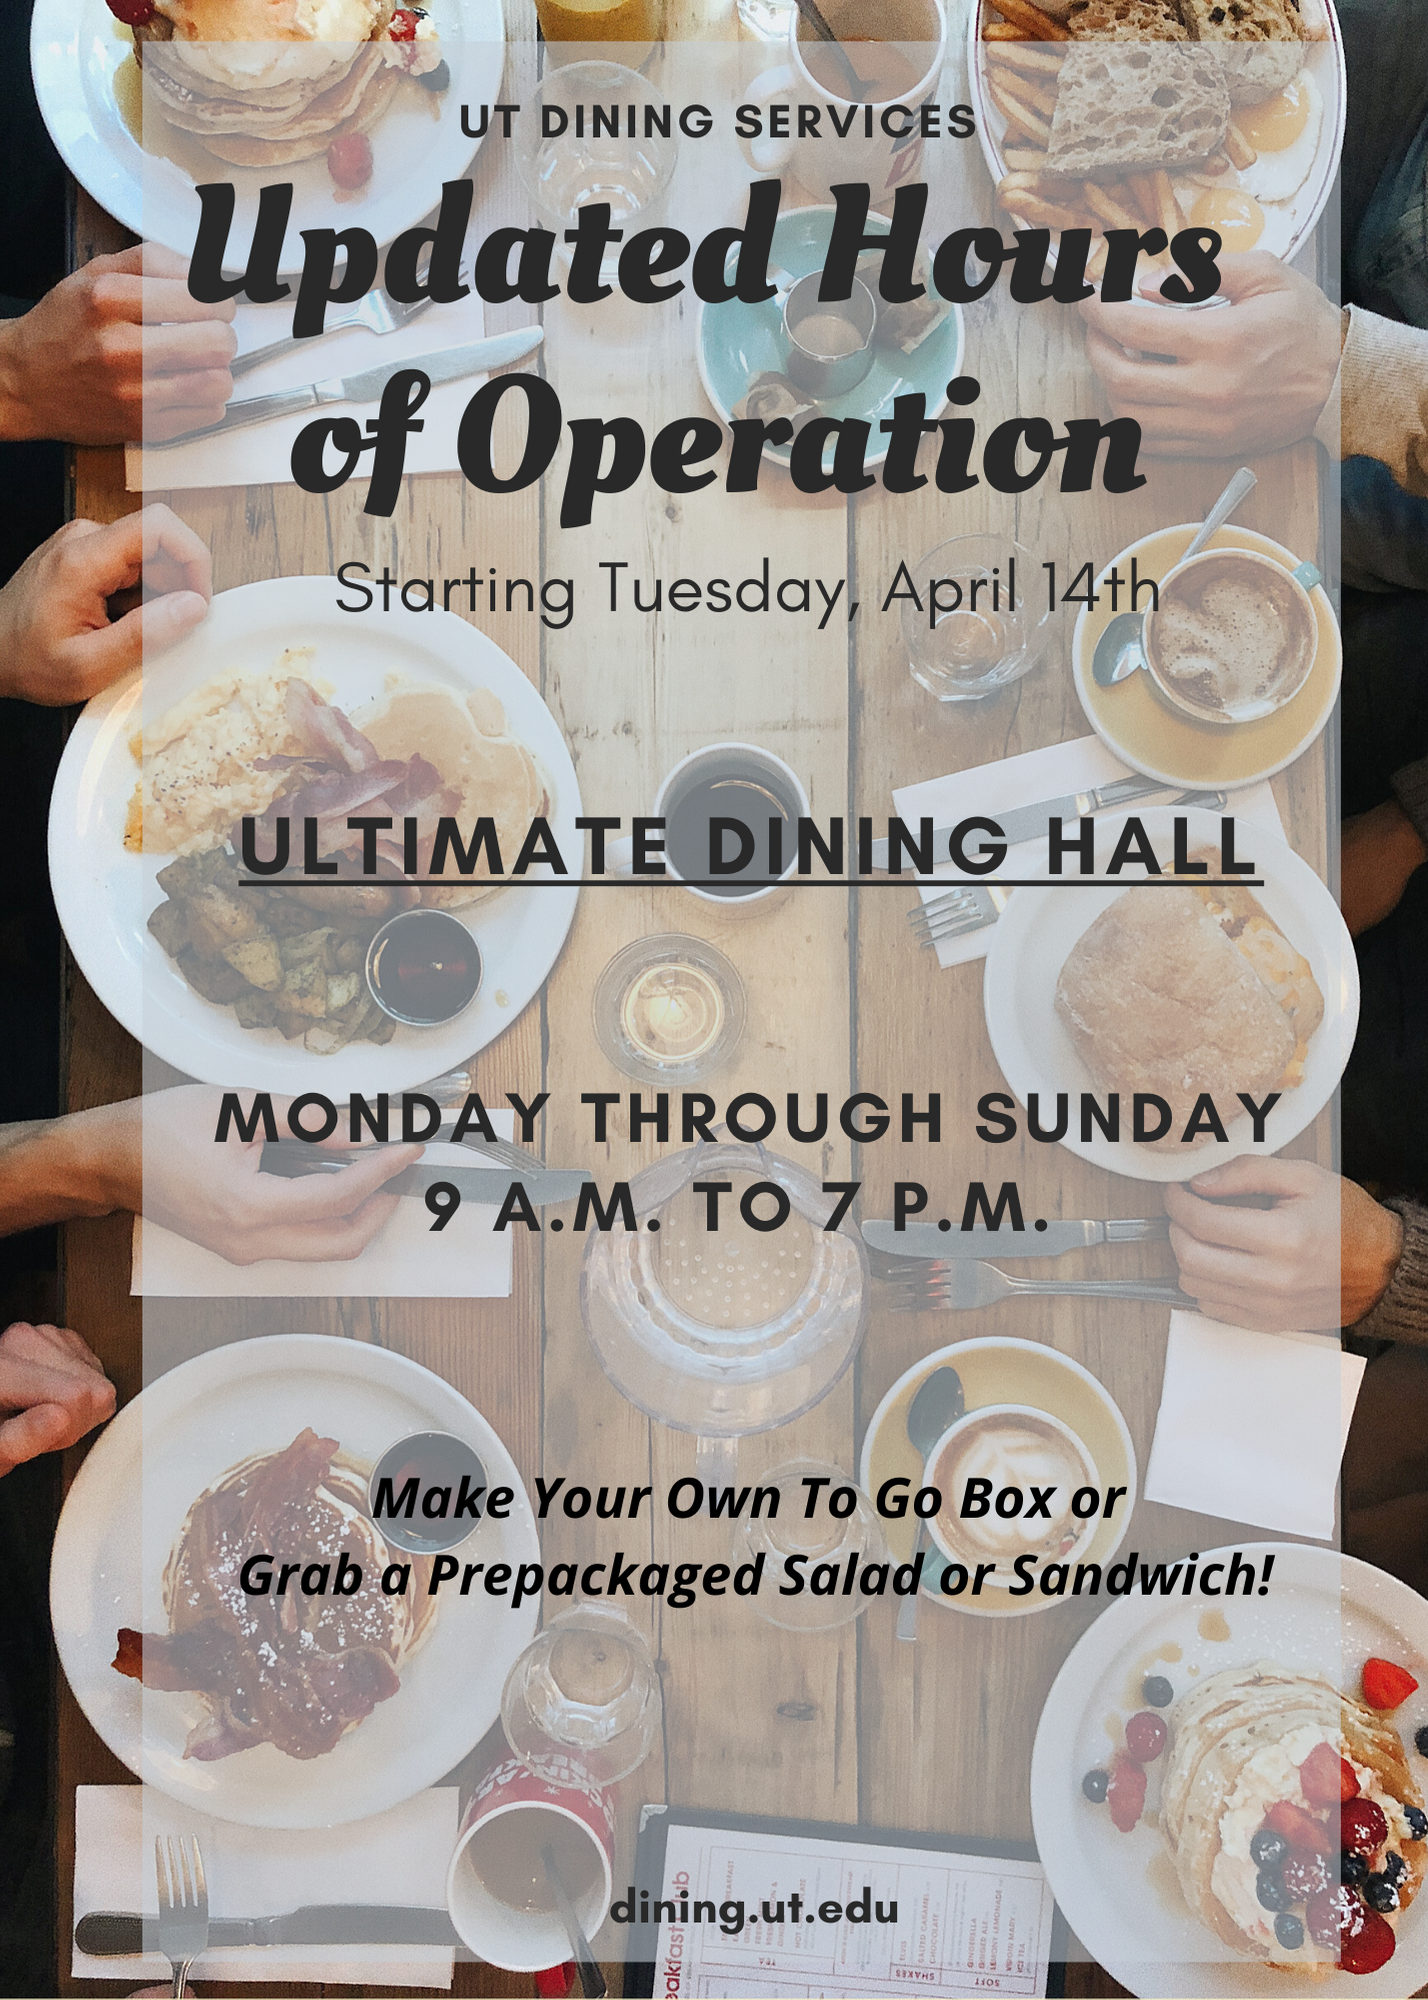 UPDATED DINING HOURS OF OPERATION